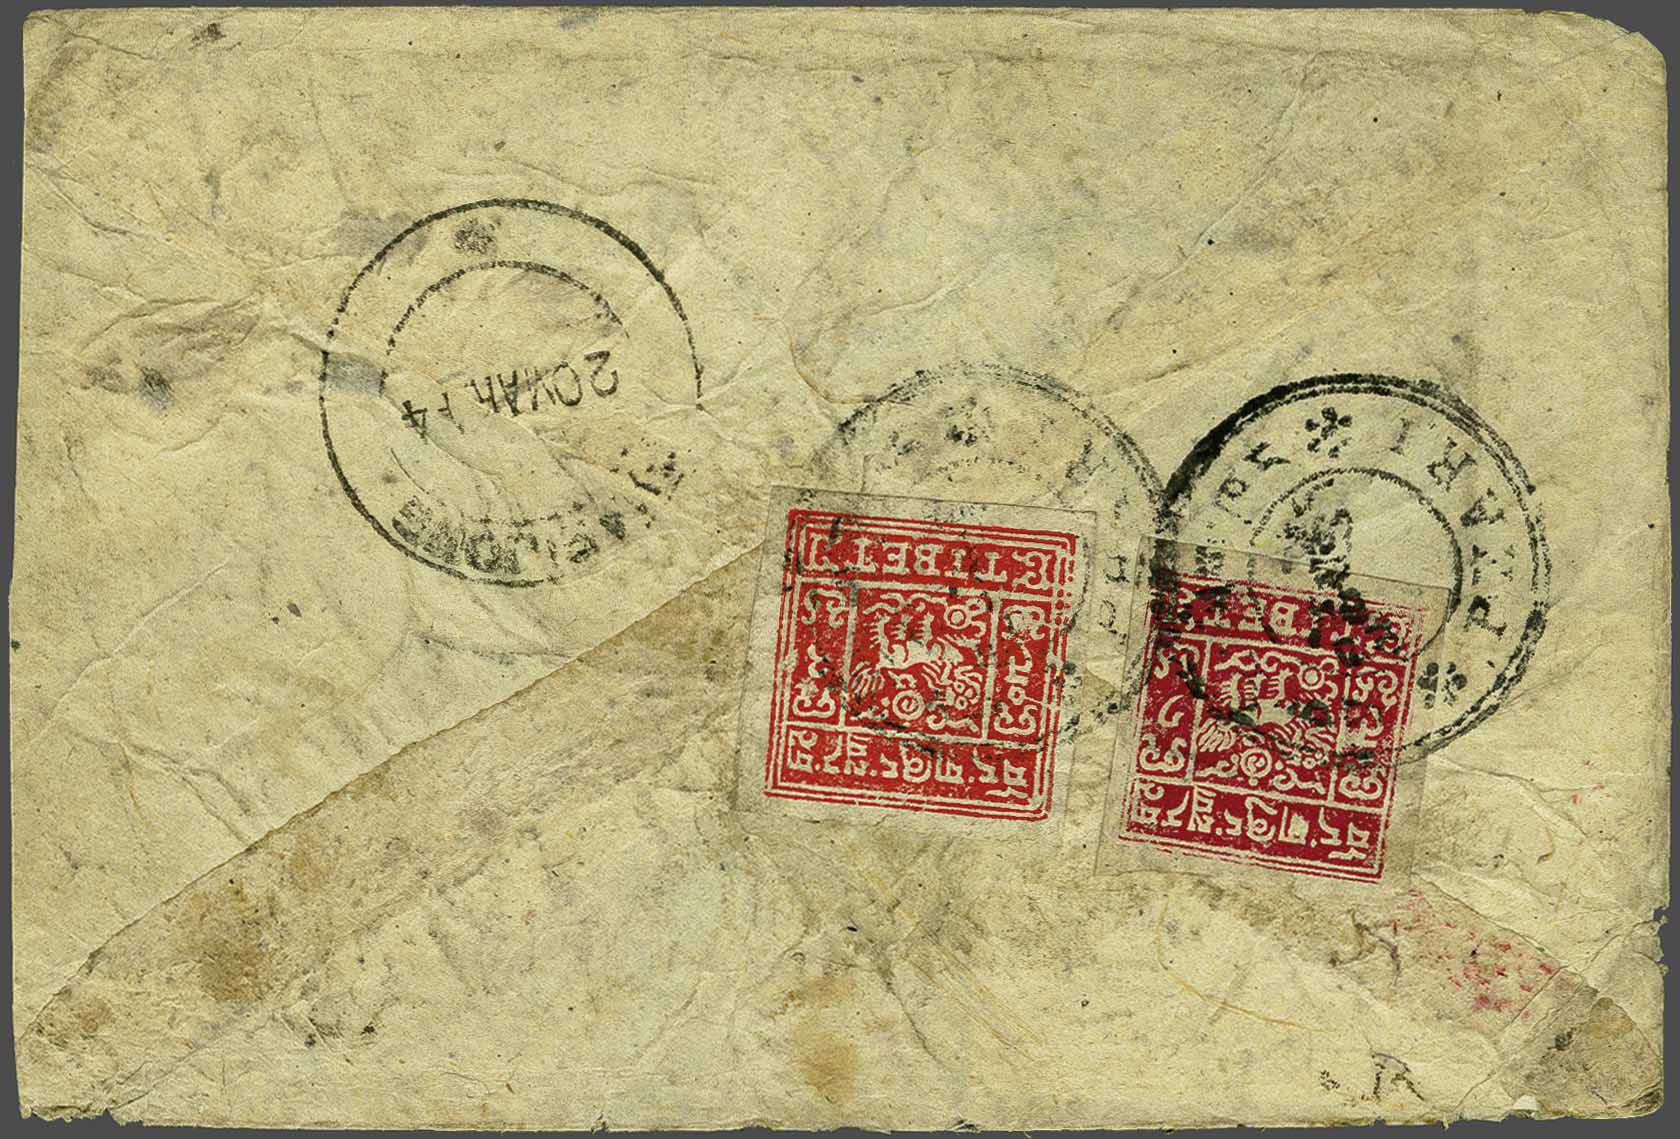 Lot 73 - Great Britain and former colonies Nepal -  Corinphila Veilingen Auction 245-246 Day 1 - Nepal - The Dick van der Wateren Collection, Foreign countries - Single lots, Picture postcards